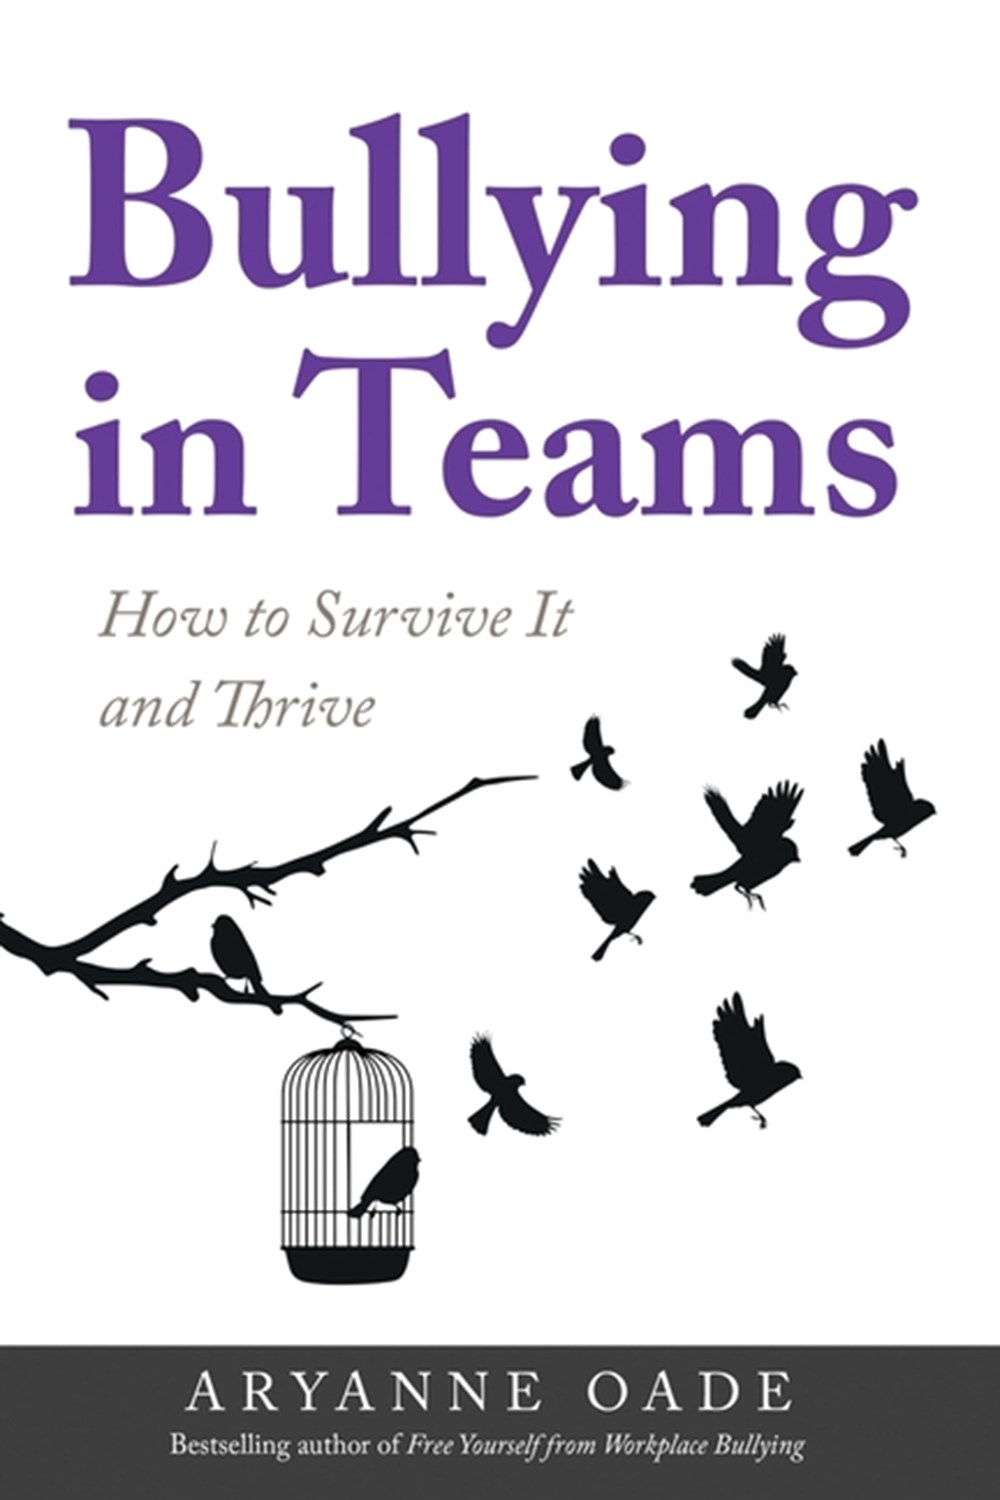 Bullying in Teams How to Survive It and Thrive